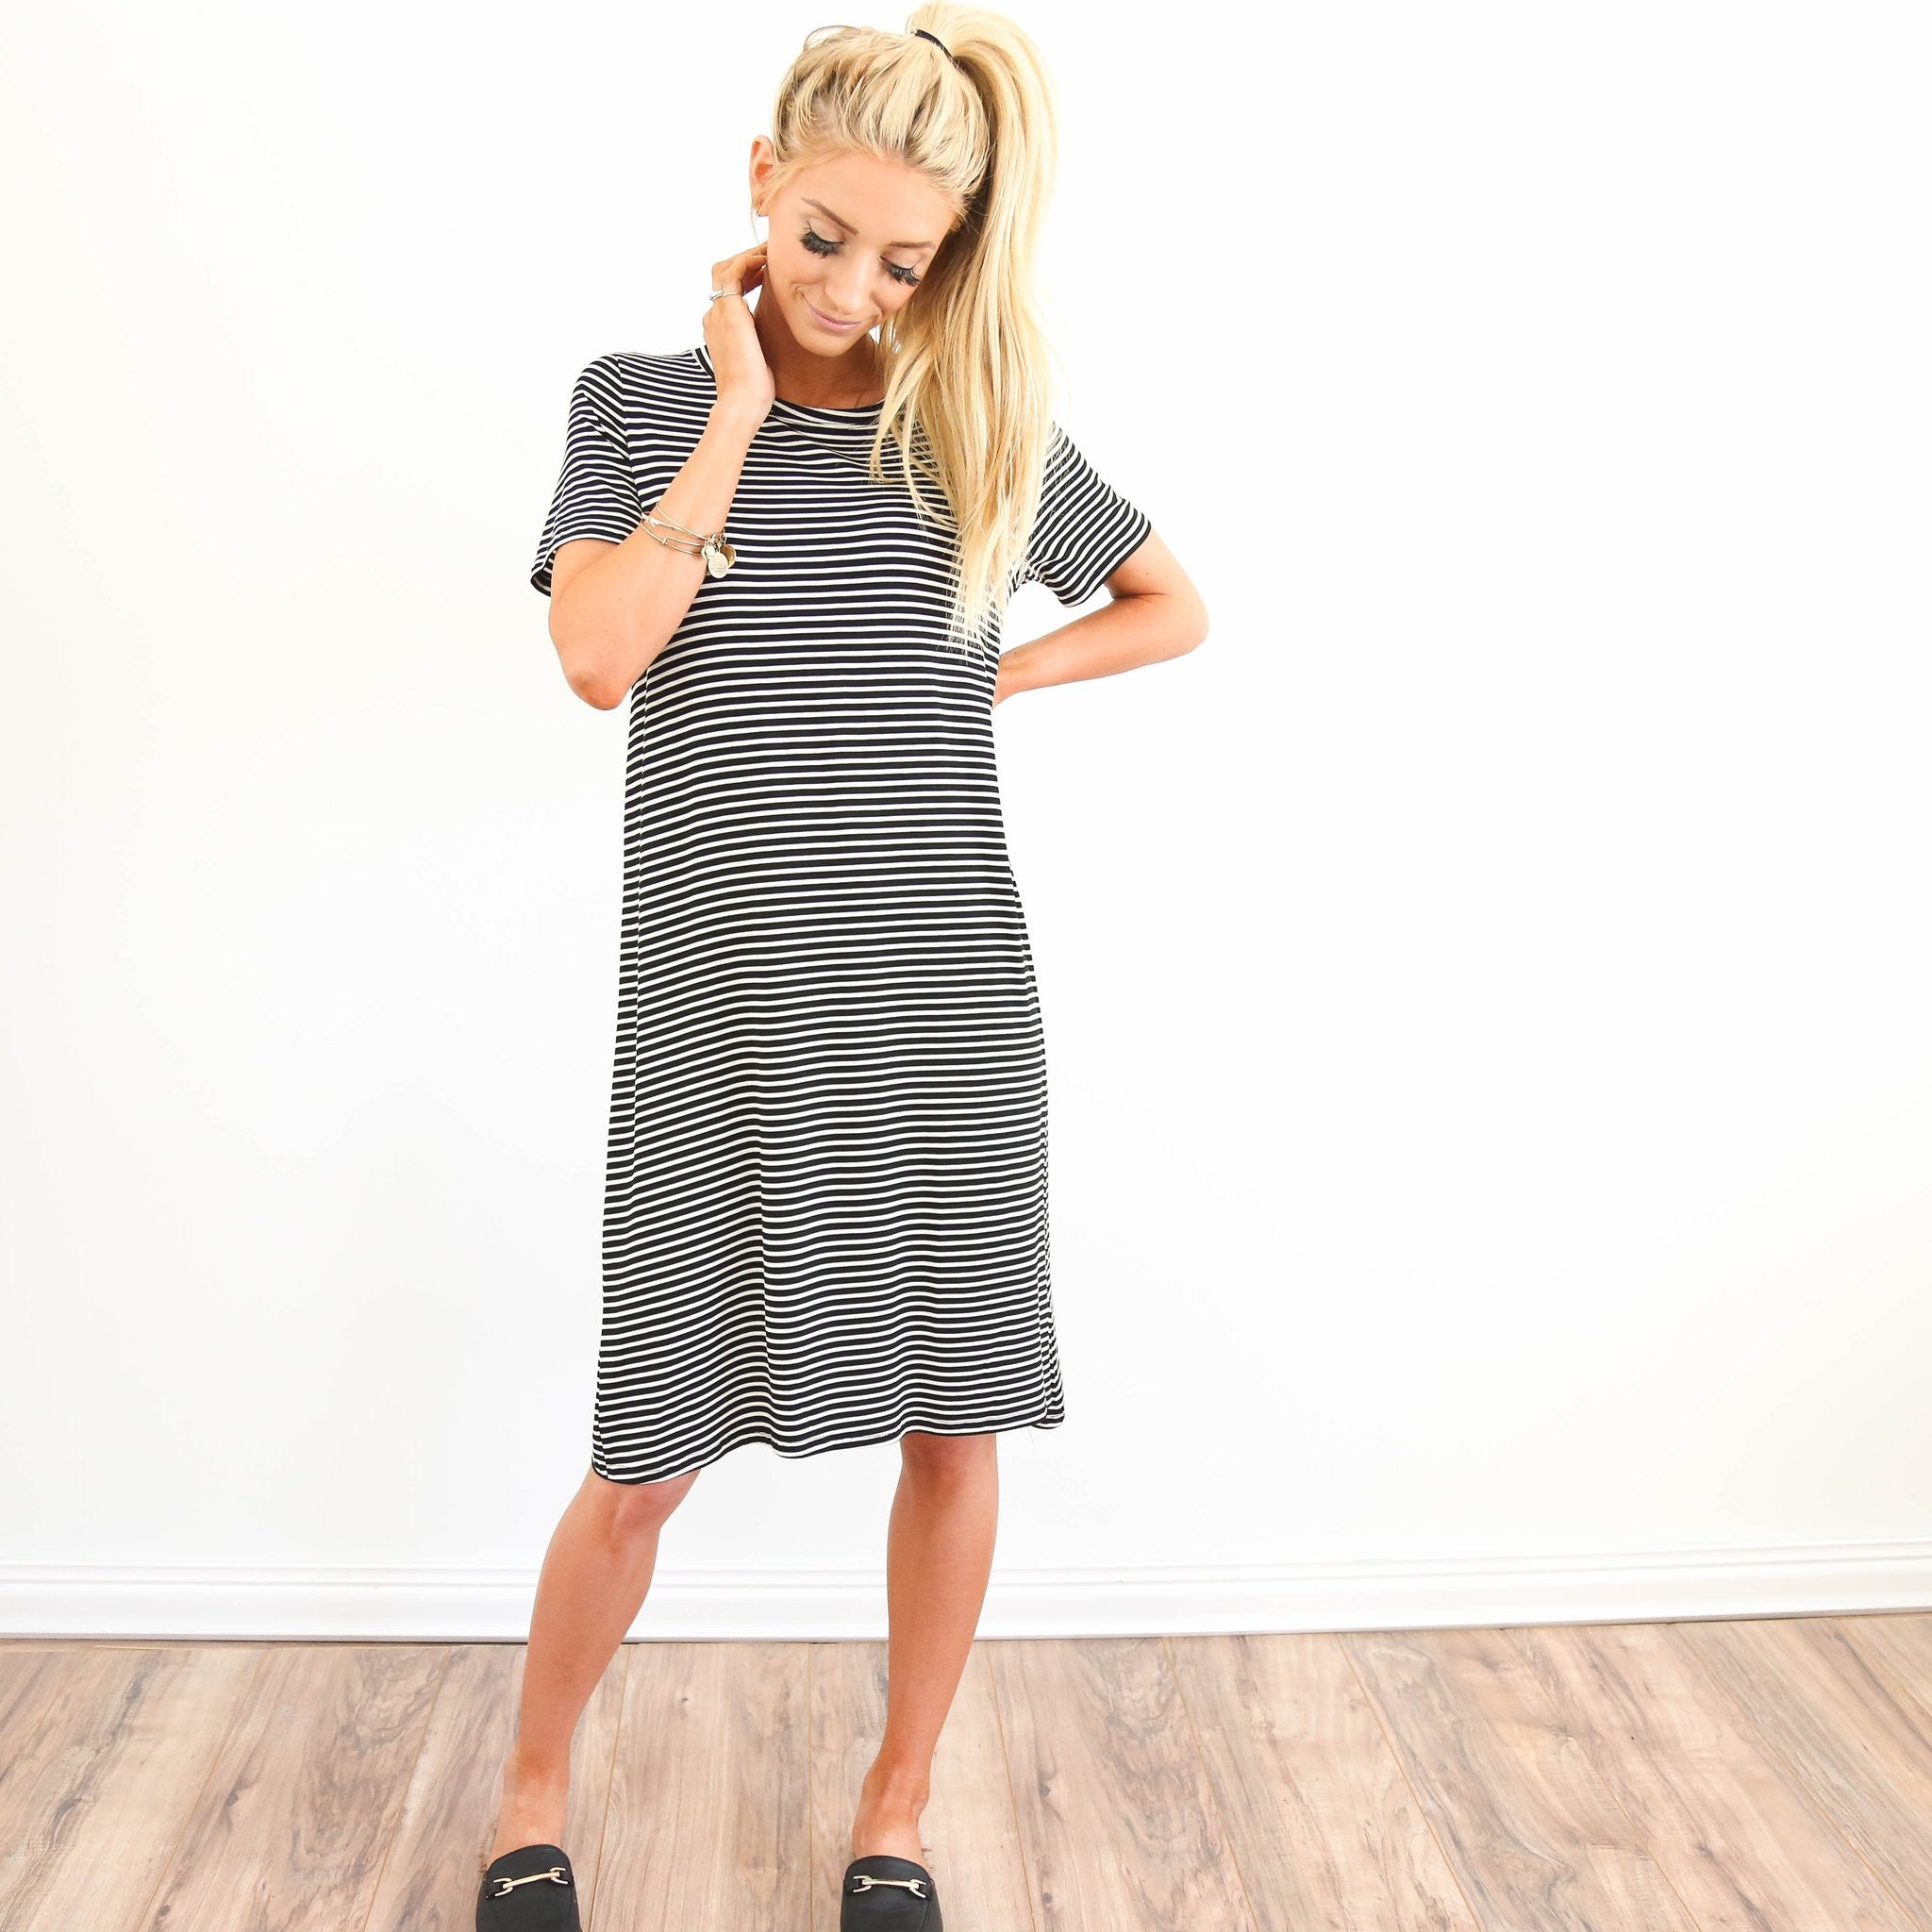 S & Co. Finley Stripe Dress in Black